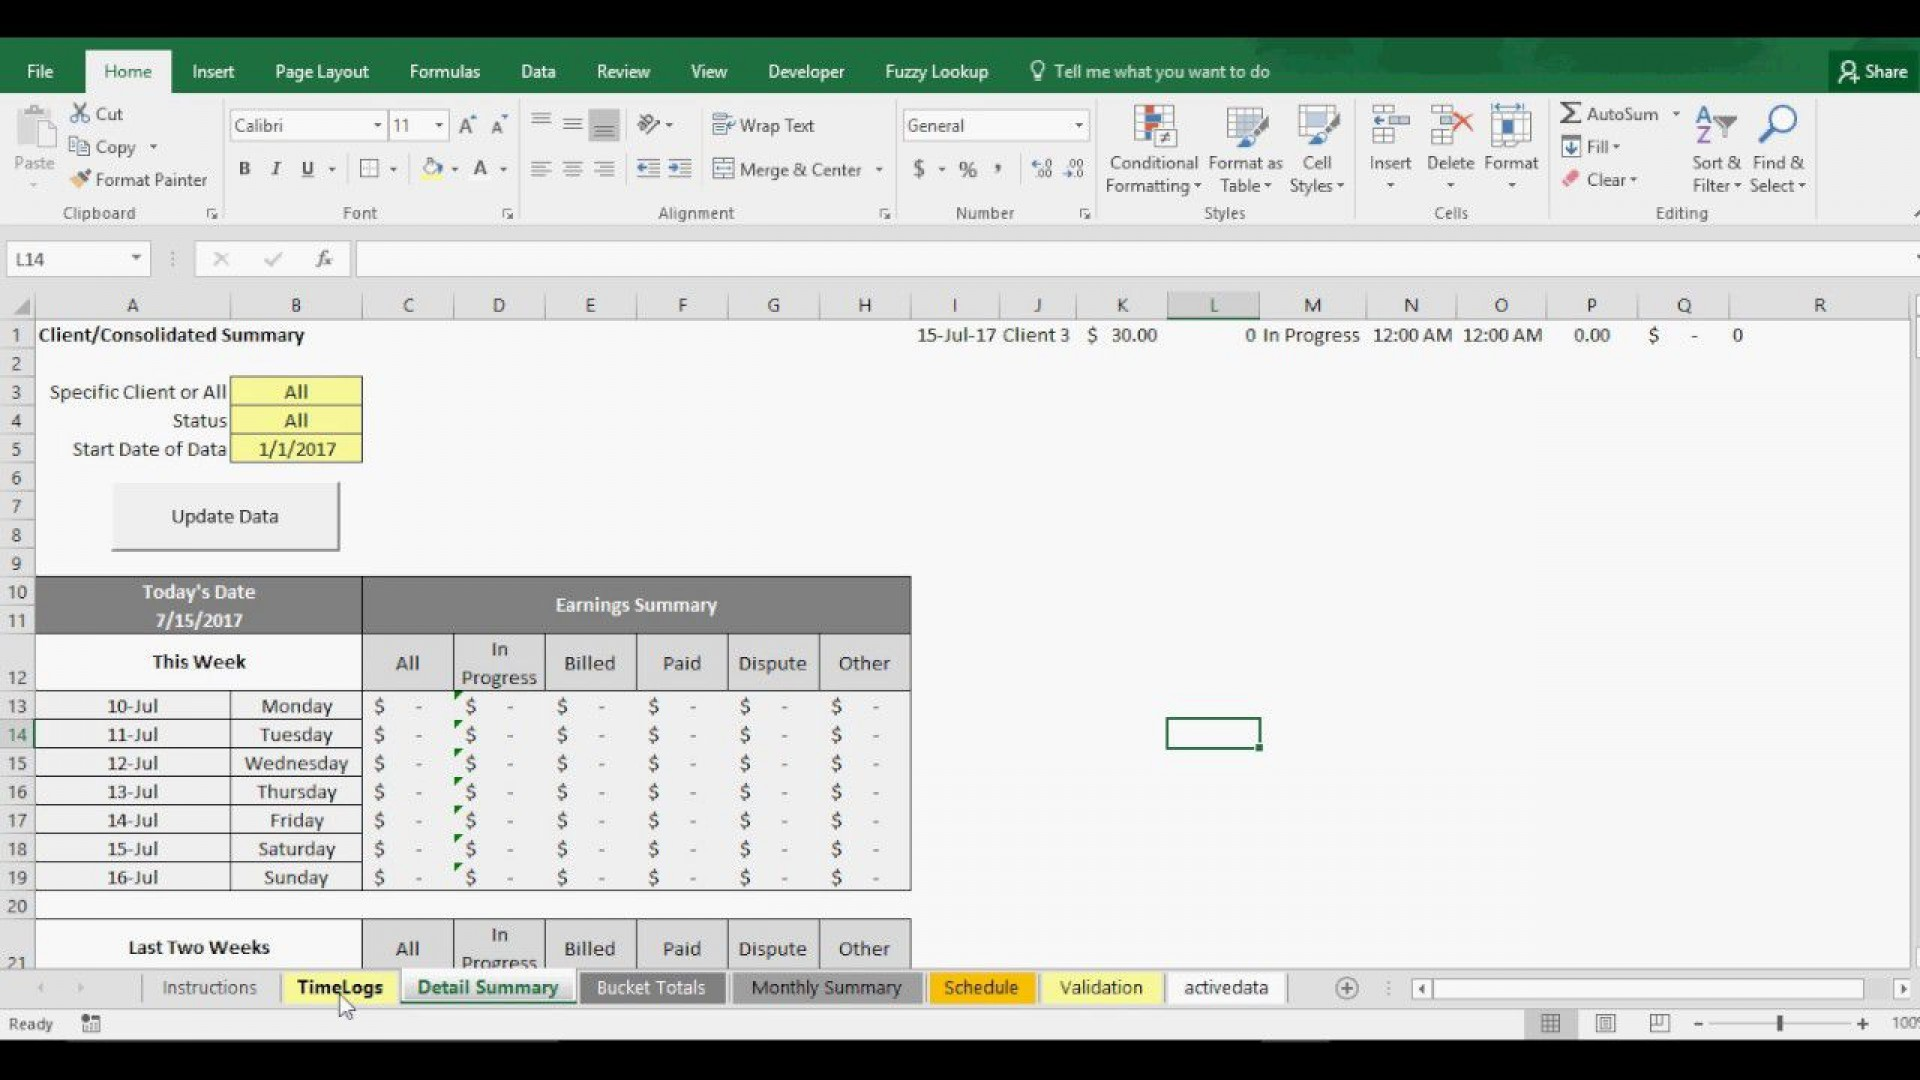 005 Best Billable Hour Template Excel Free Design 1920